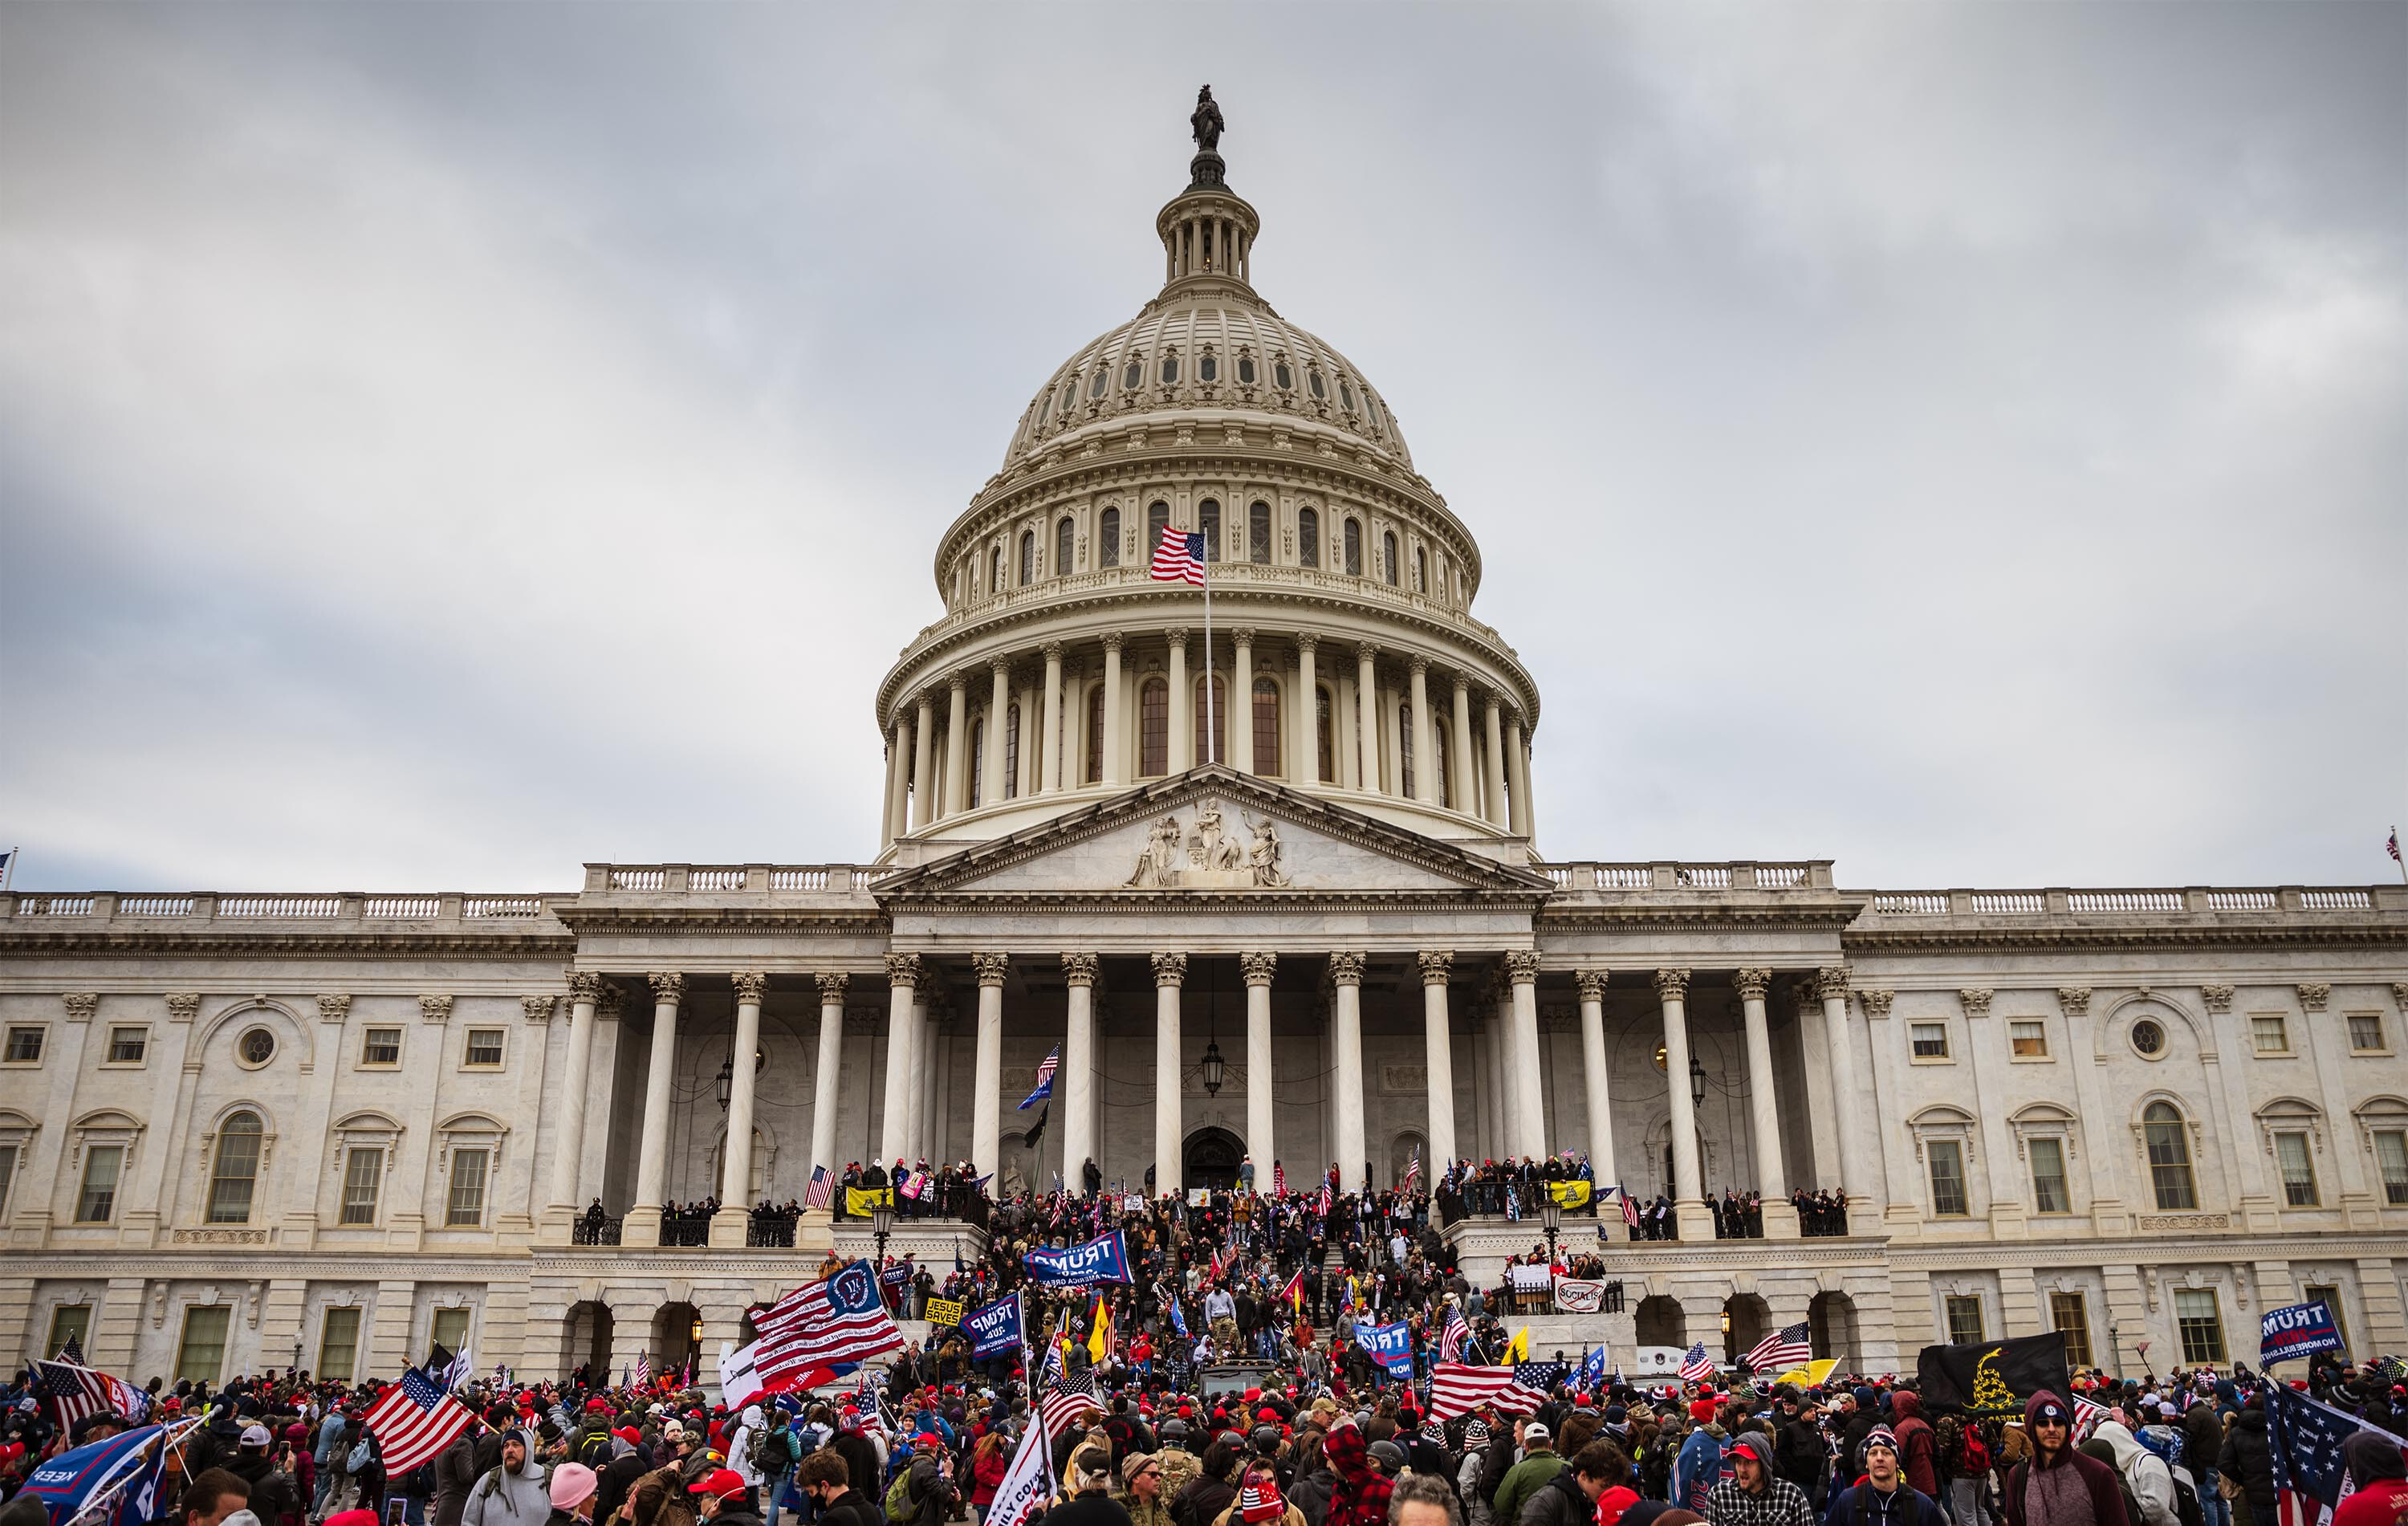 Capitol riot defendants raise more than $2 million from crowdfunding